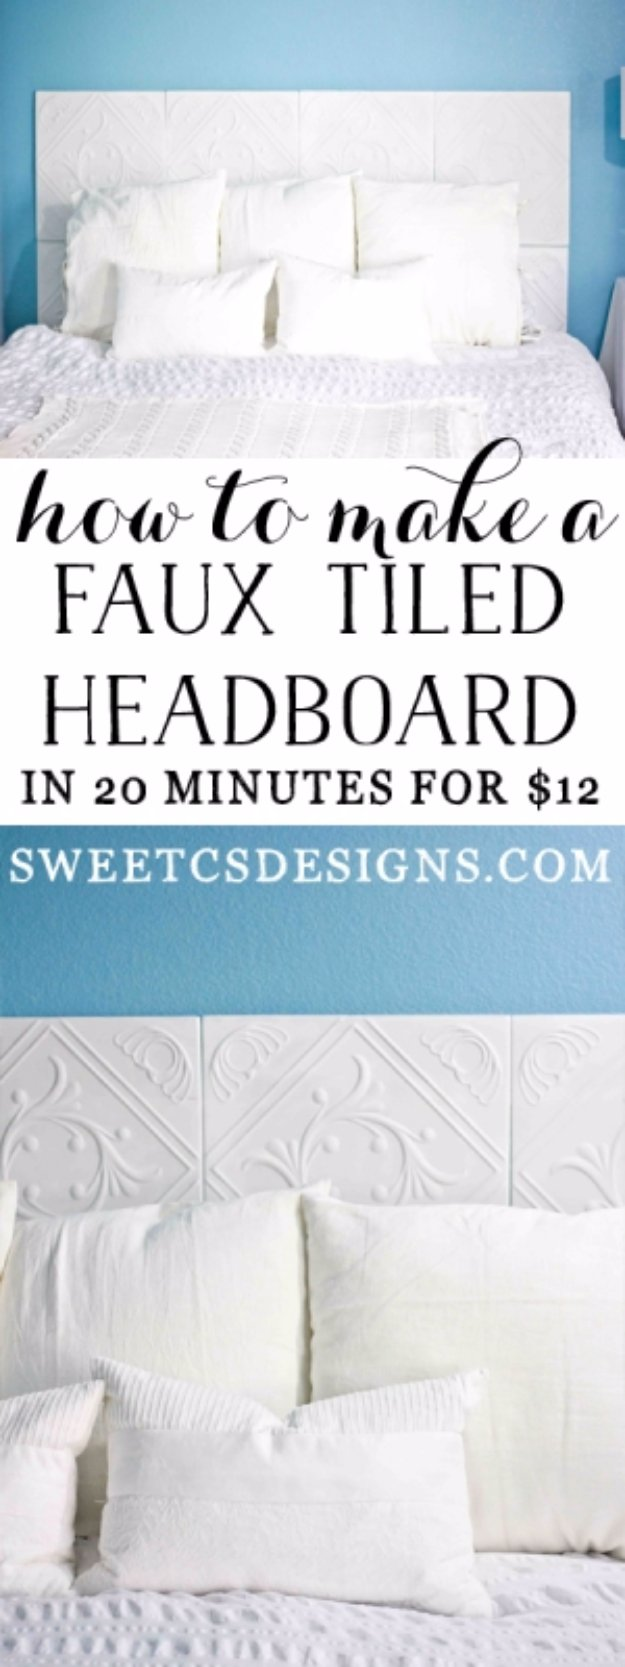 DIY Headboard Ideas - Faux Tiled Headboard - Easy and Cheap Do It Yourself Headboards - Upholstered, Wooden, Fabric Tufted, Rustic Pallet, Projects With Lights, Storage and More Step by Step Tutorials #diy #bedroom #furniture